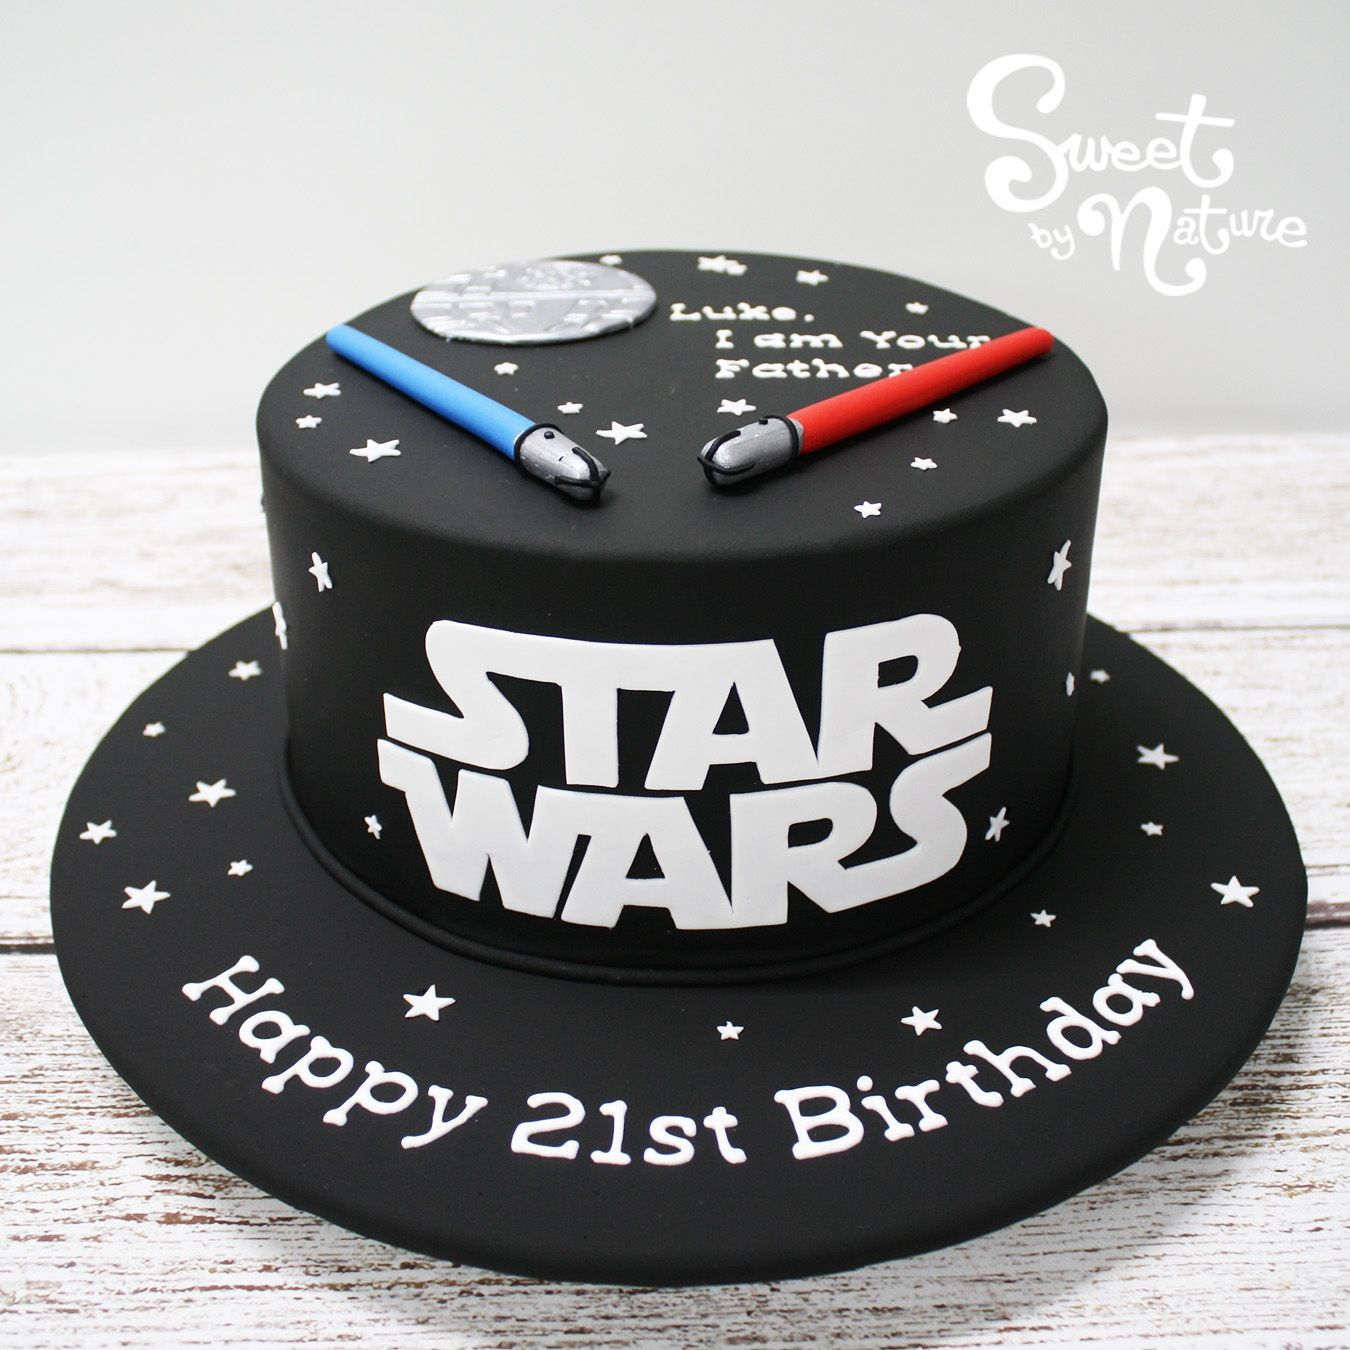 Pleasing Star Wars Themed 21St Birthday Cake Simple But Fun Made By Funny Birthday Cards Online Fluifree Goldxyz